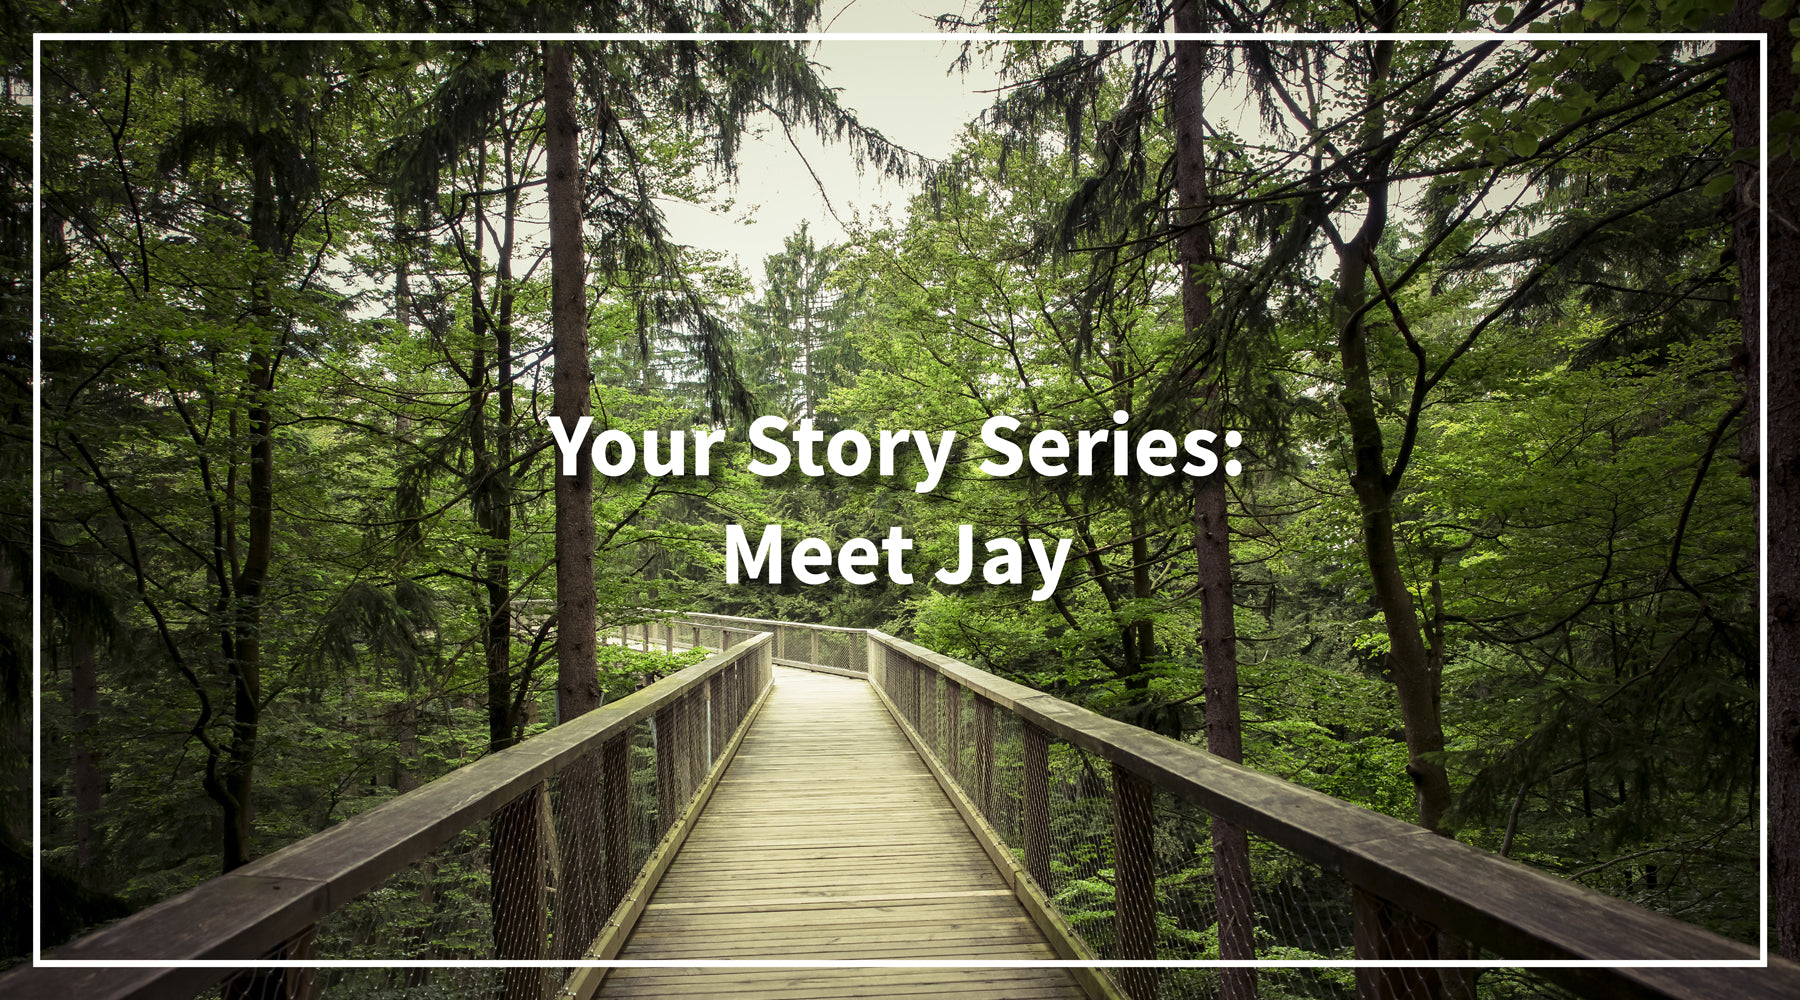 Solbari blog: Your Story Series: Meet Jay